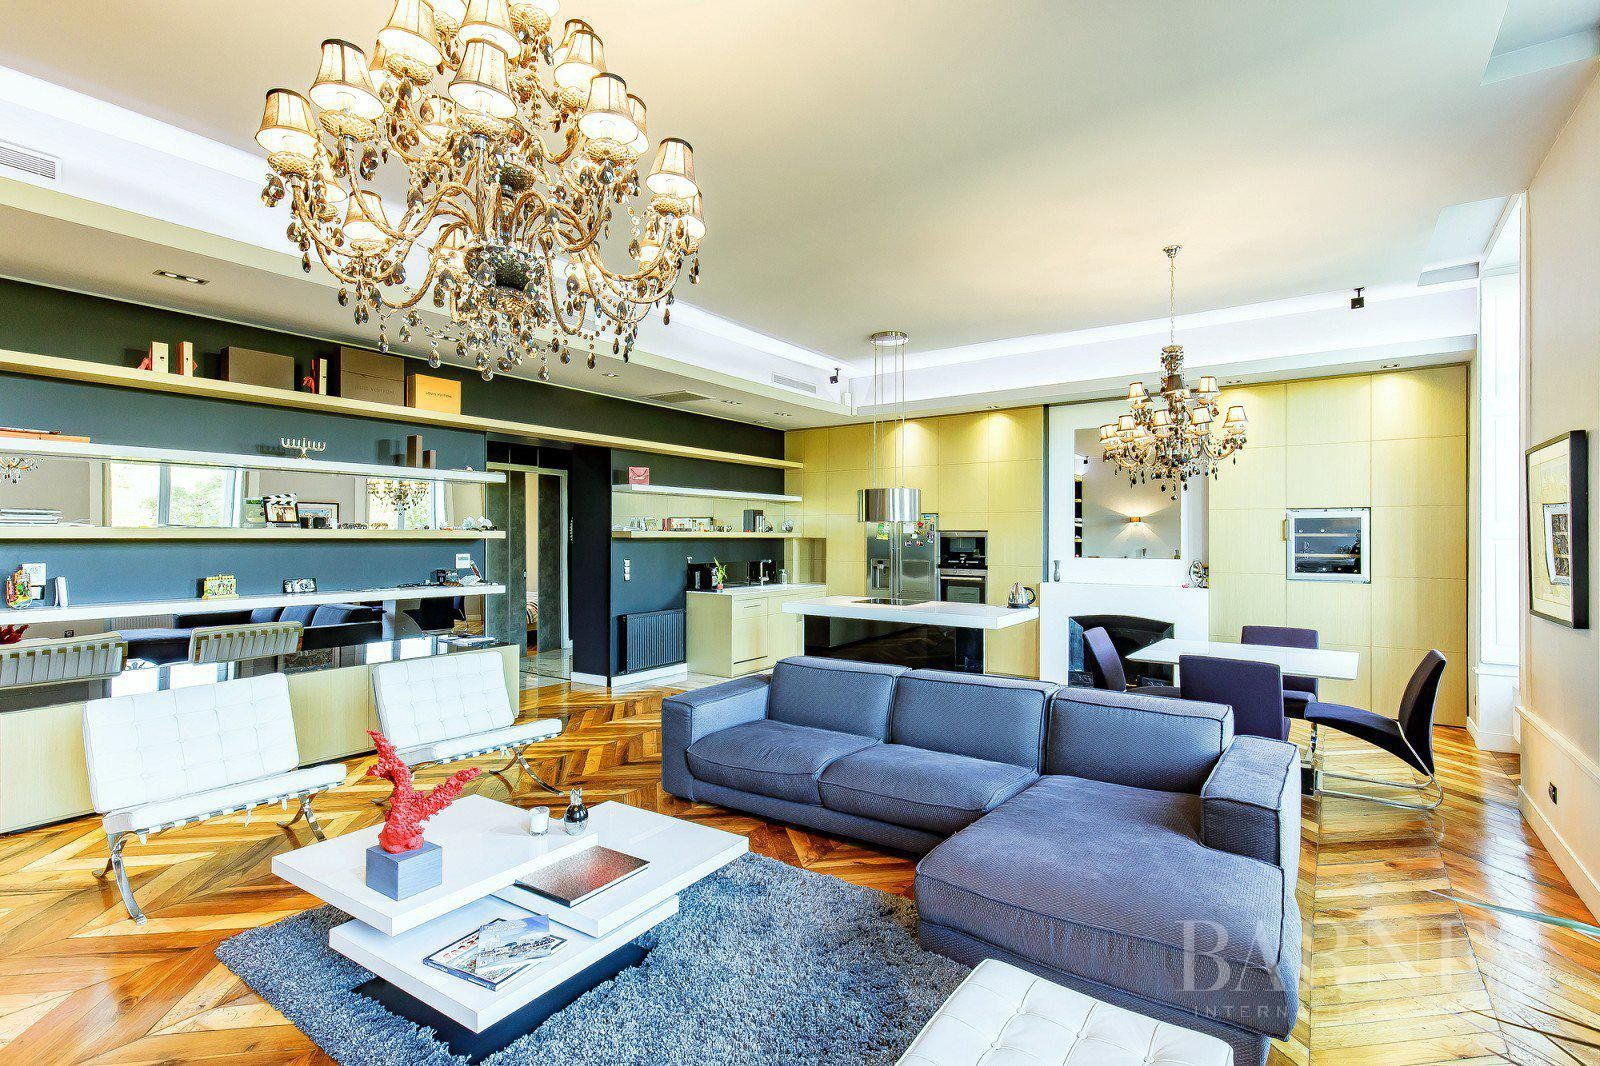 Lyon 6 - Foch - Renovated apartment of 117 sqm - 2 or 3 bedrooms